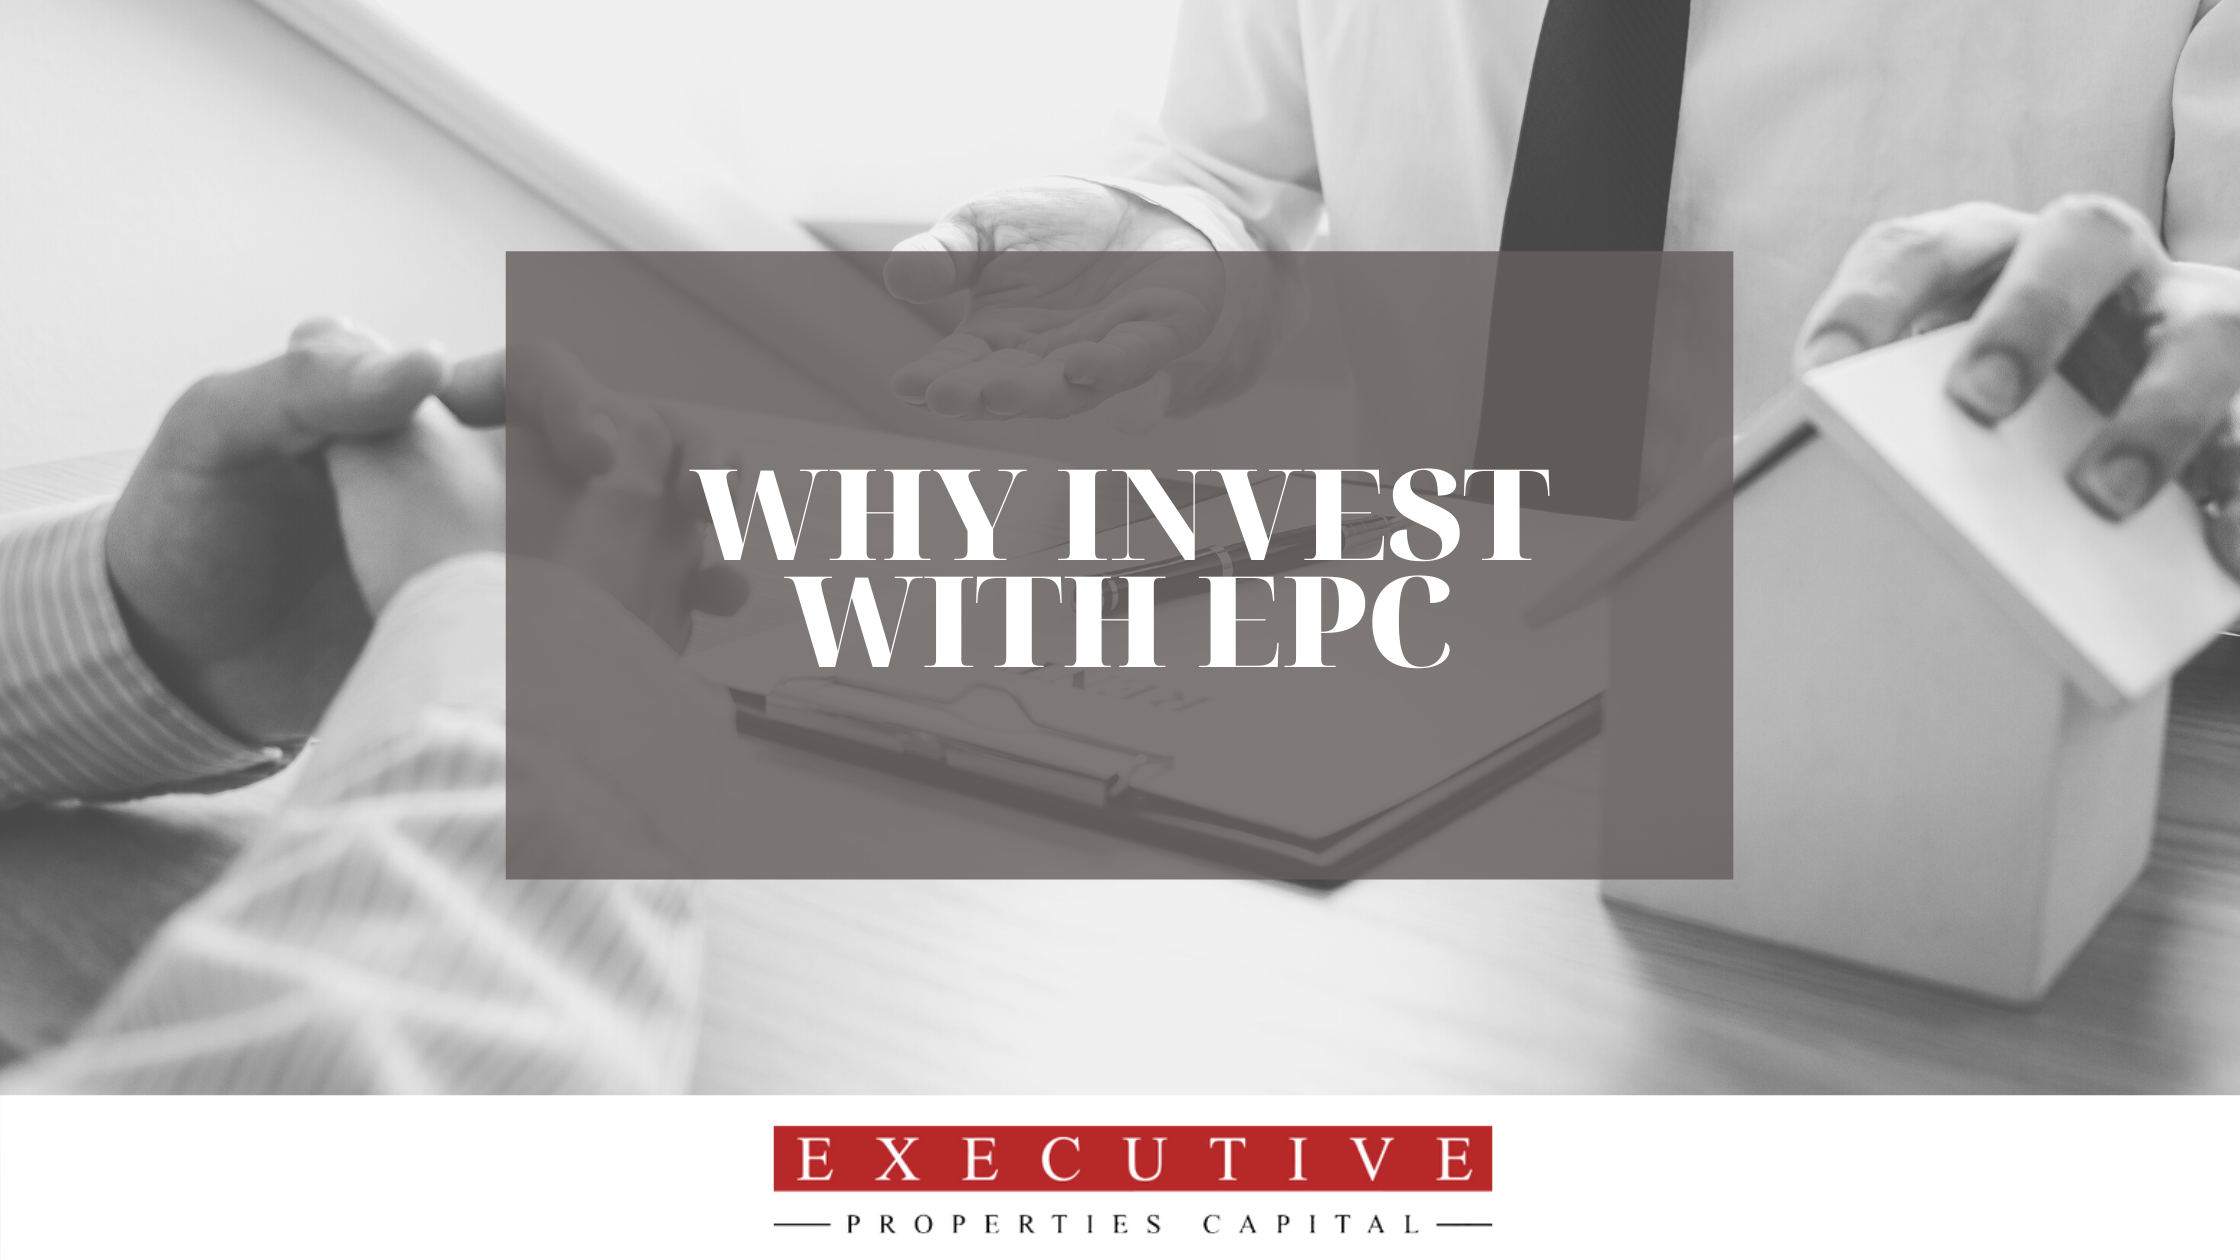 Why Invest With EPC